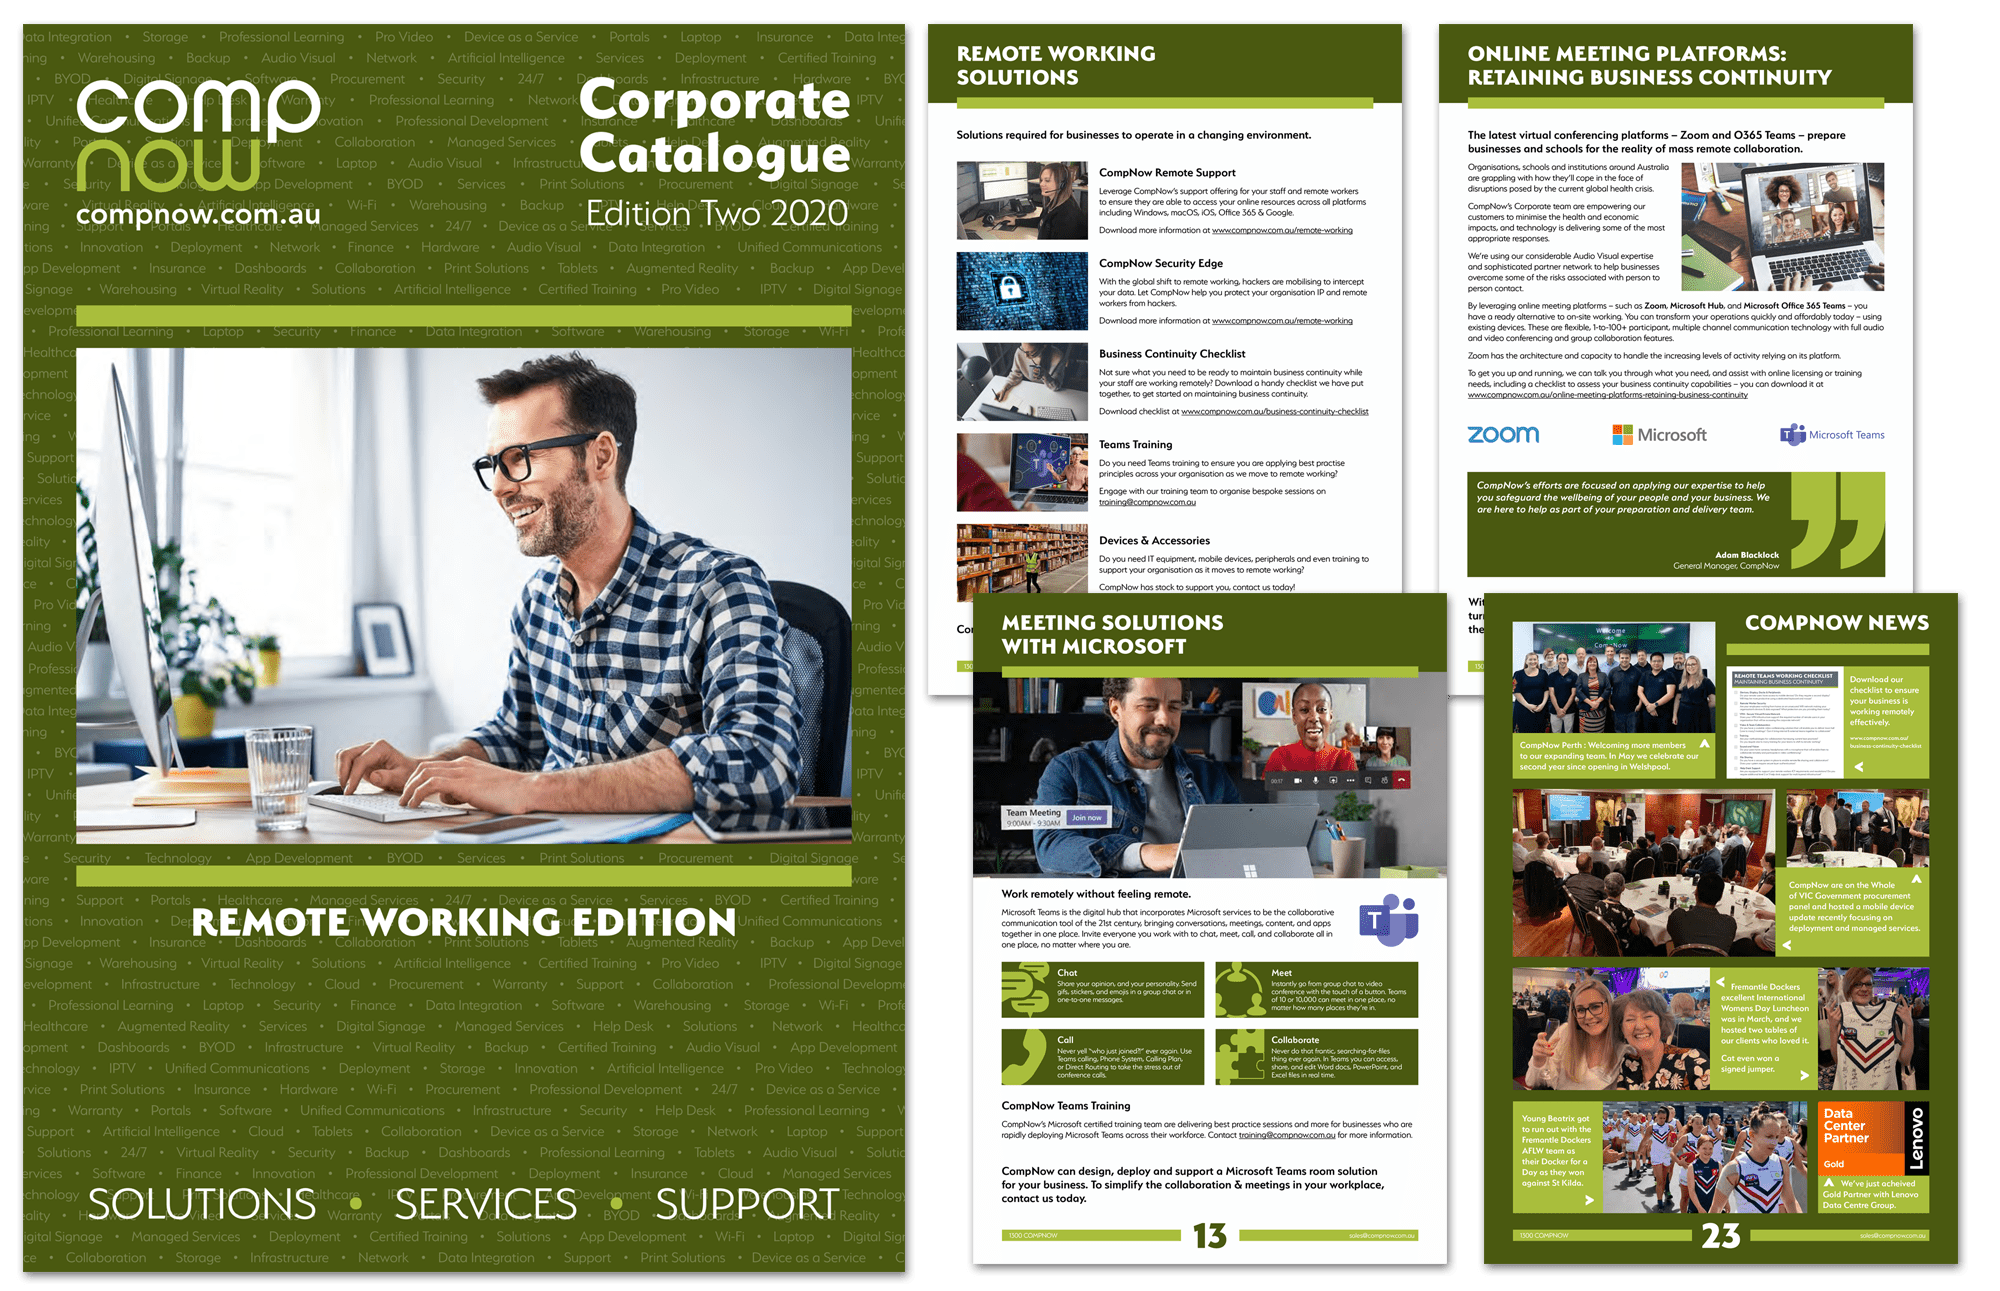 Our newest Corporate Catalogue – Remote Working Edition – is out now